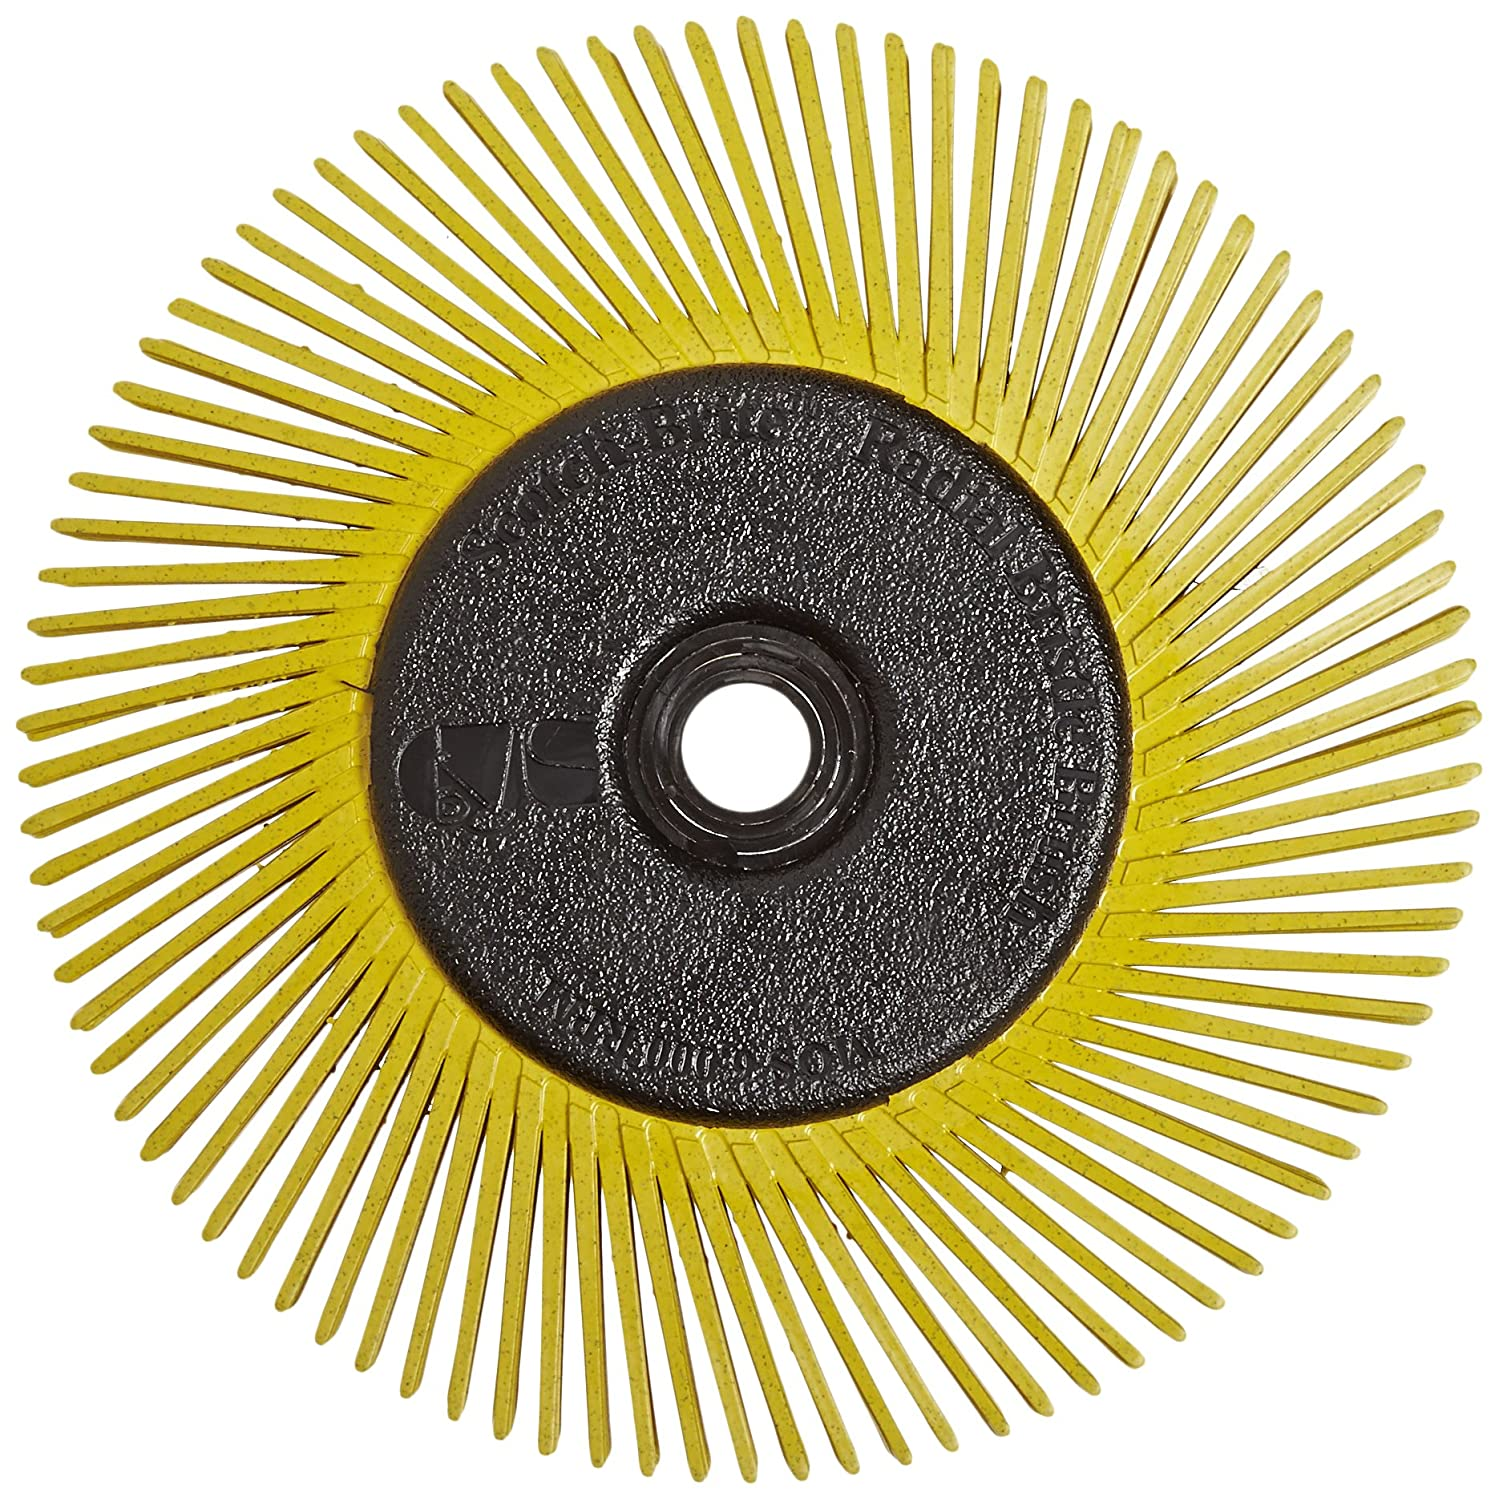 Radial Bristle Brush 150x12mm P80 gelb TypC 3M BB-ZB